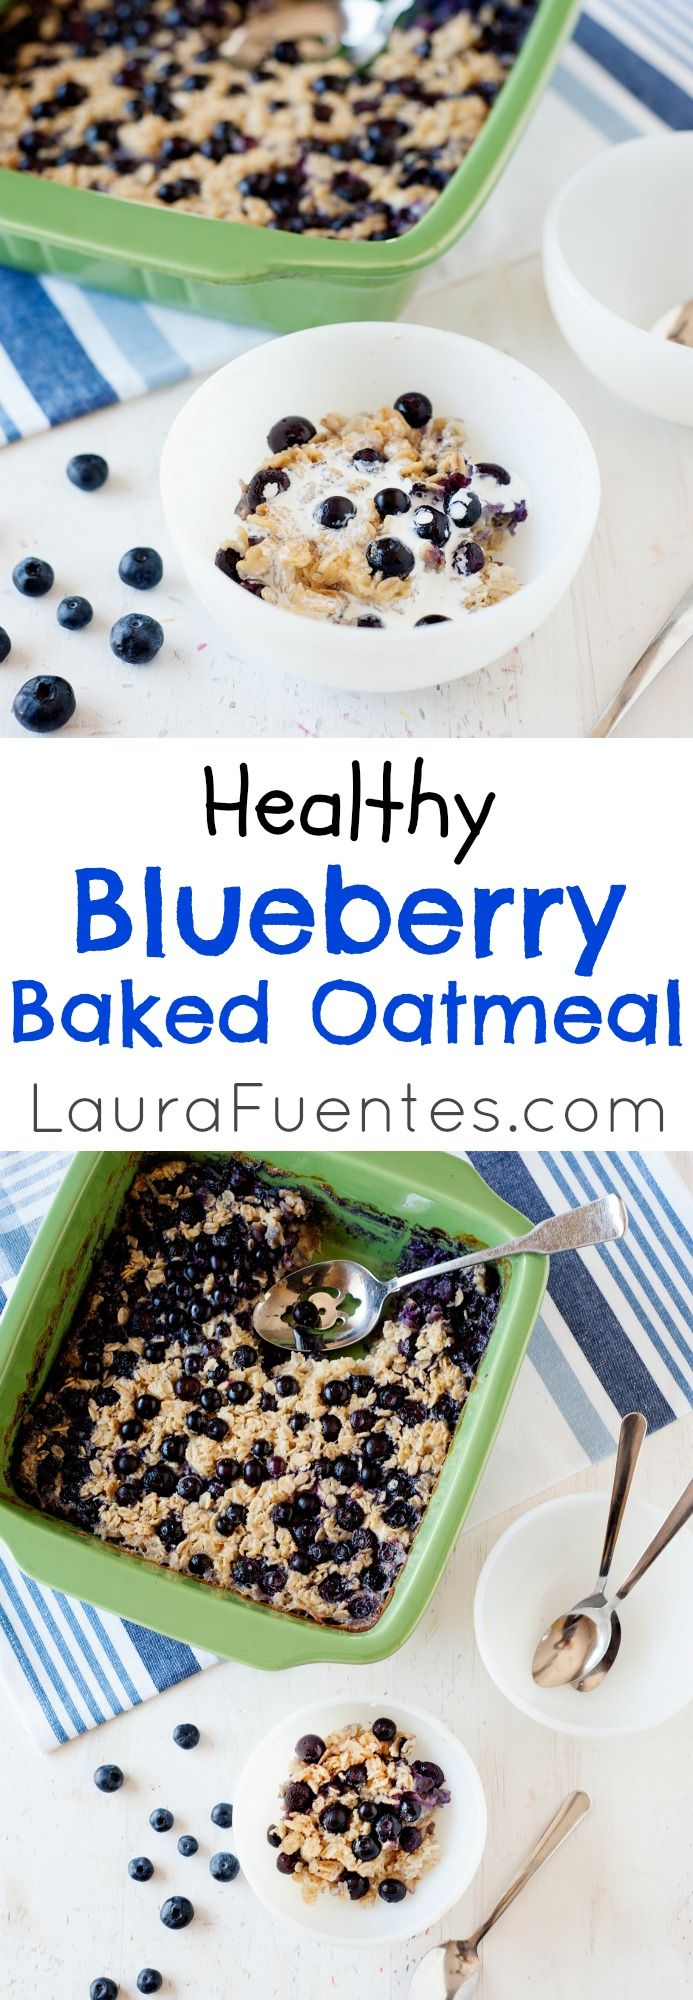 This blueberry baked oatmeal recipe is a hearty and healthy breakfast that can…